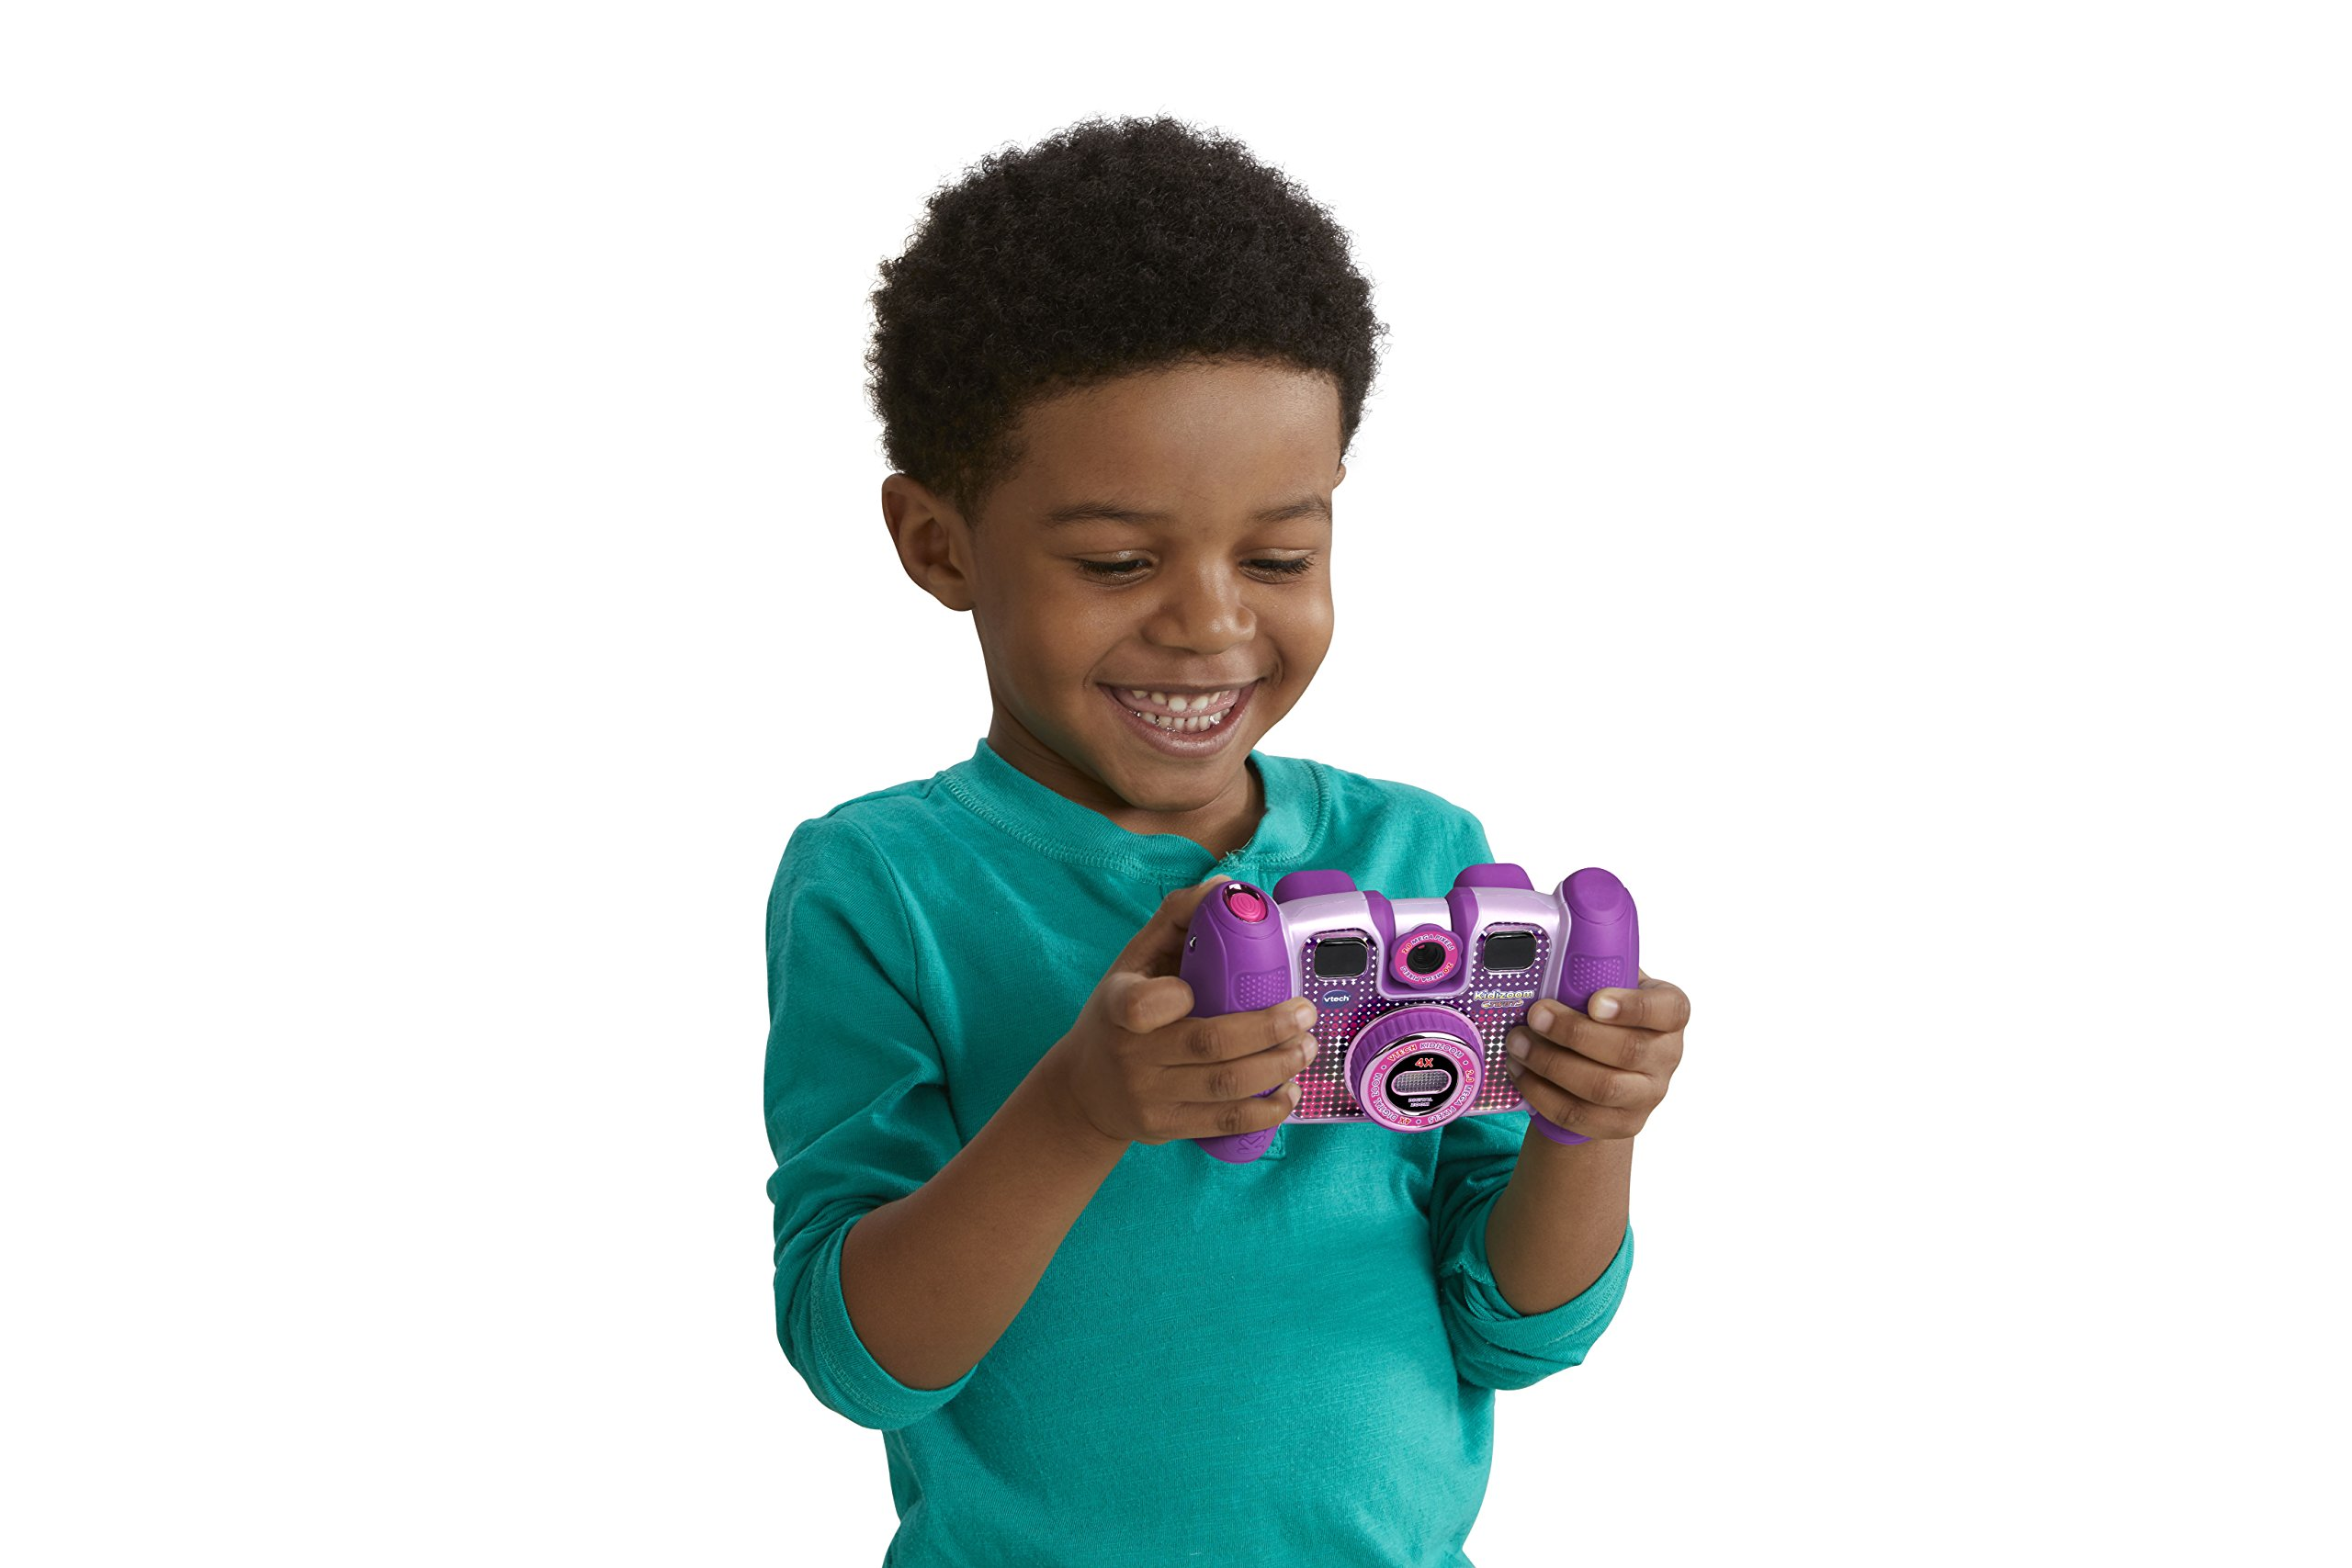 VTech Kidizoom Twist Connect Camera, Purple by VTech (Image #9)